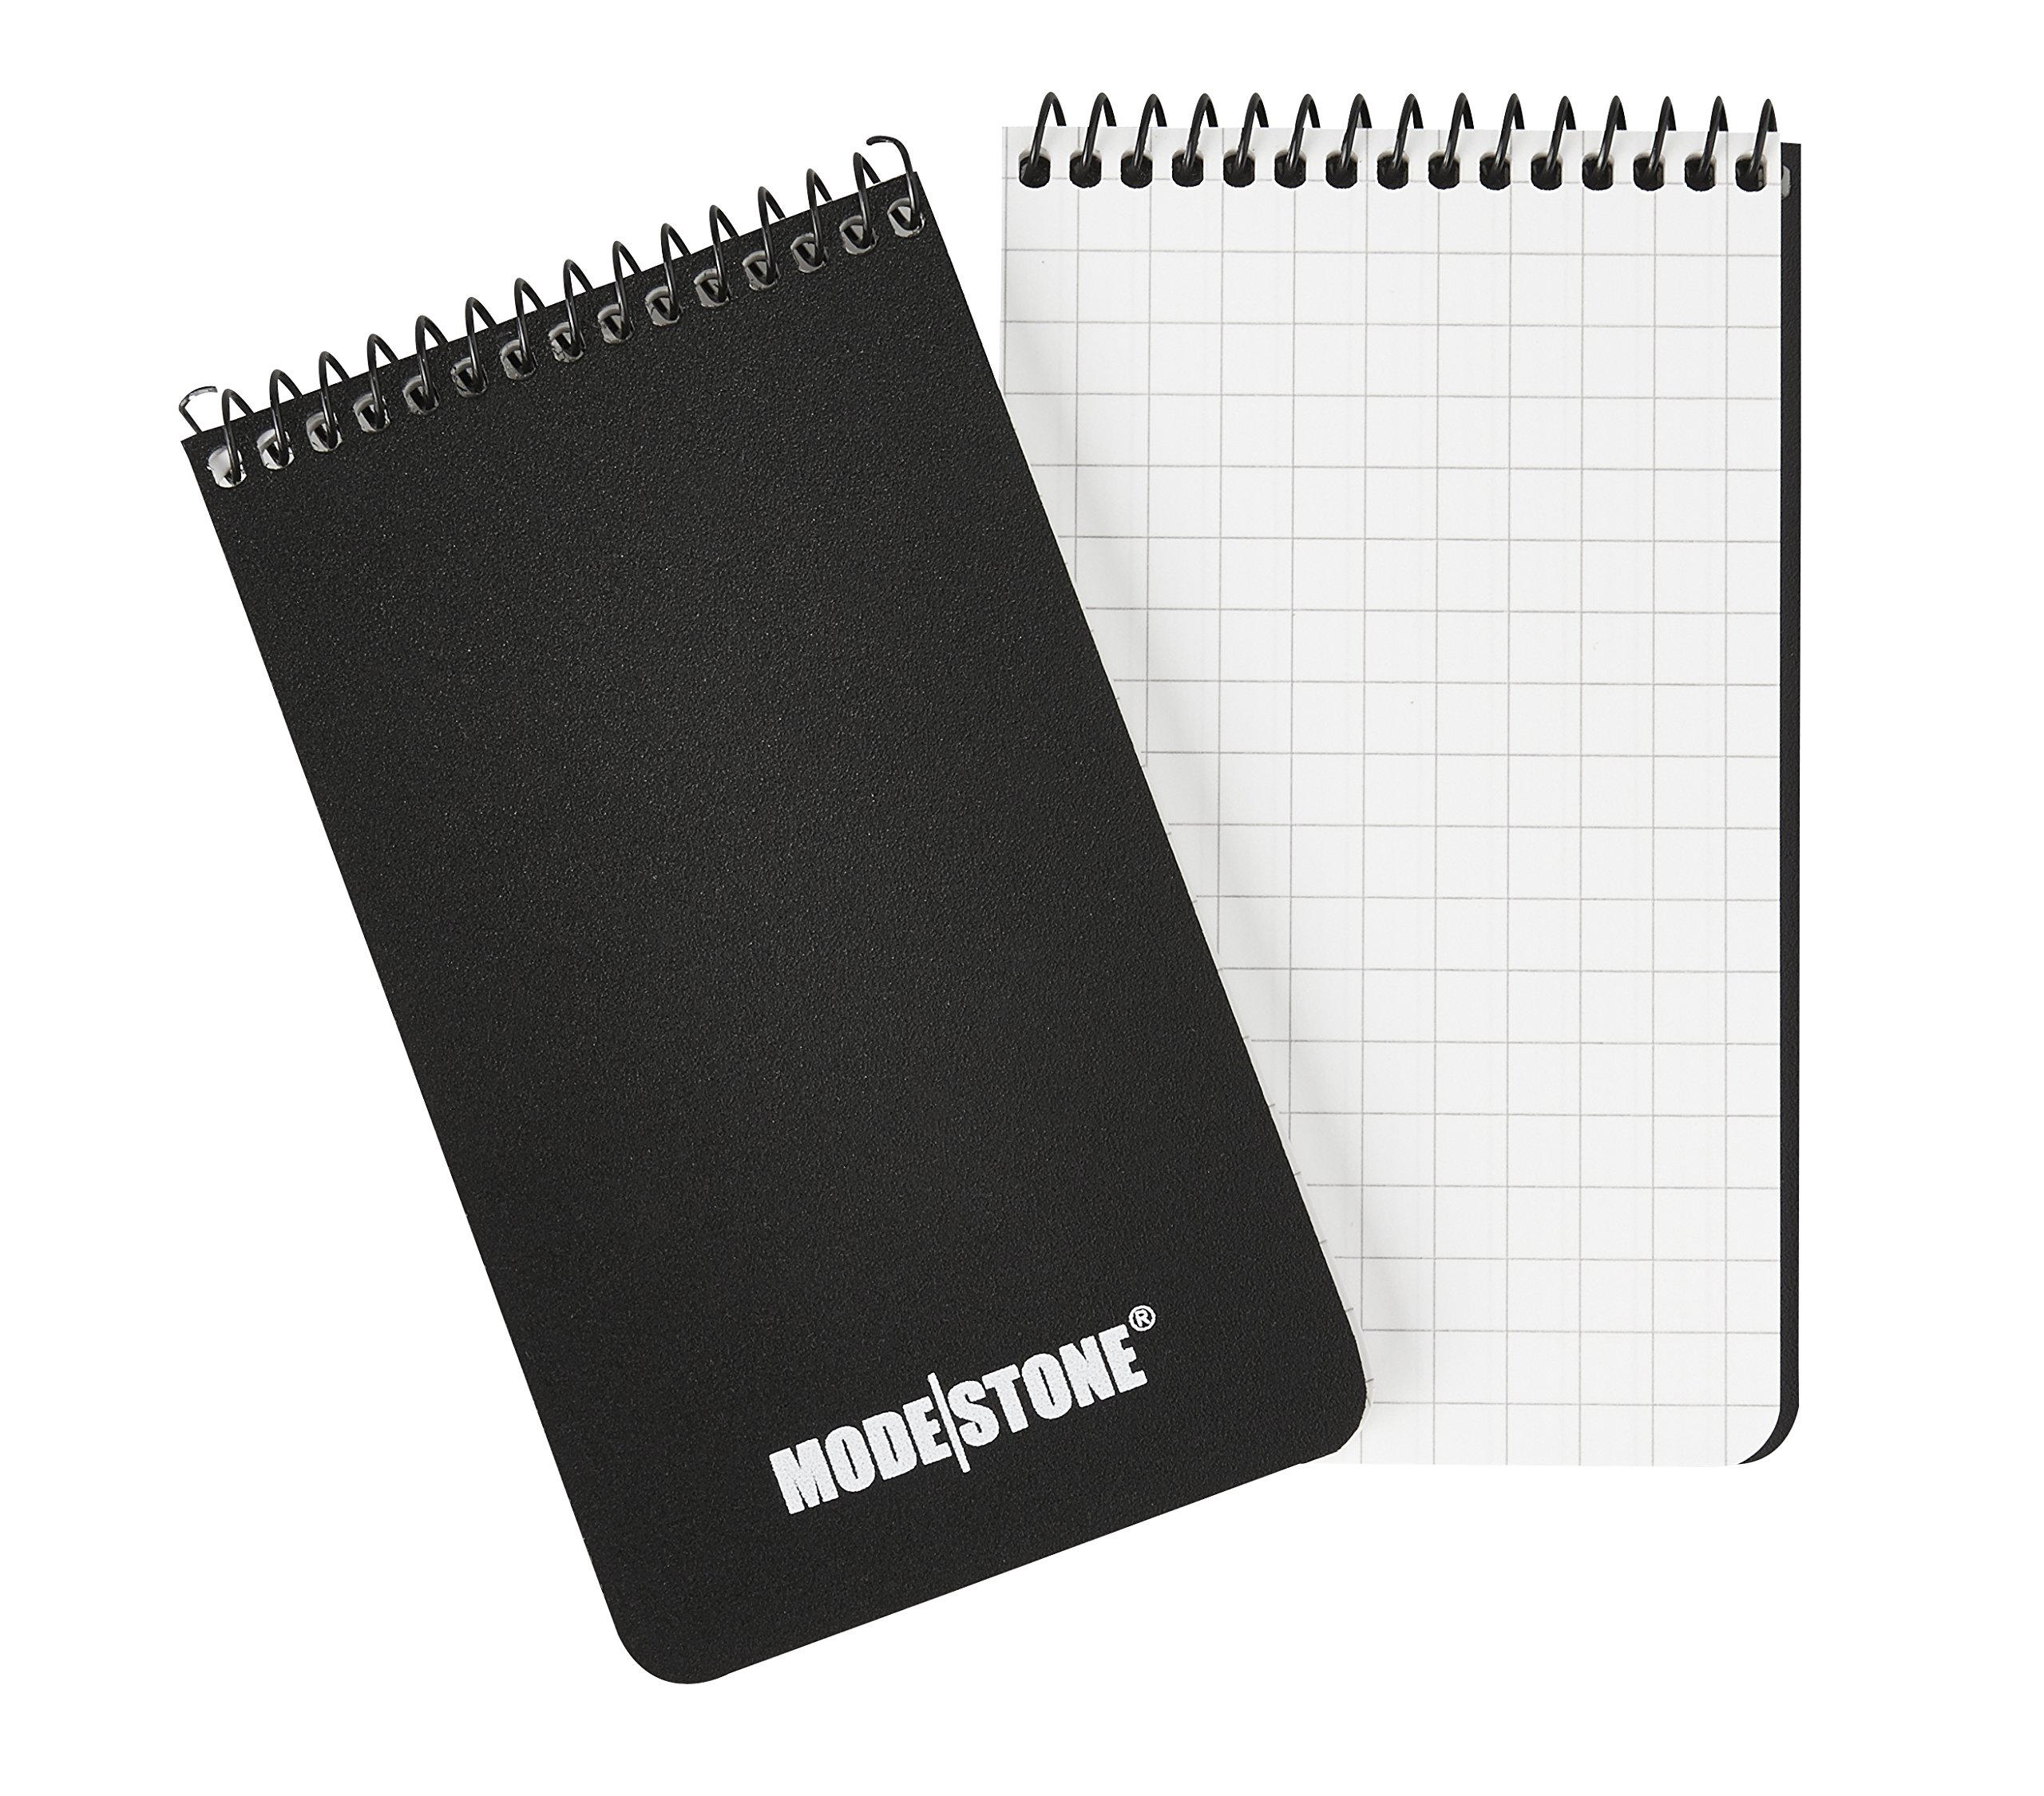 All Weather Waterproof Notebook by Modestone, Top Spiral Bound, Quad Ruled Officer's Pad, 3.8' x 5.8', 30 Sheets, Black (3 pack)